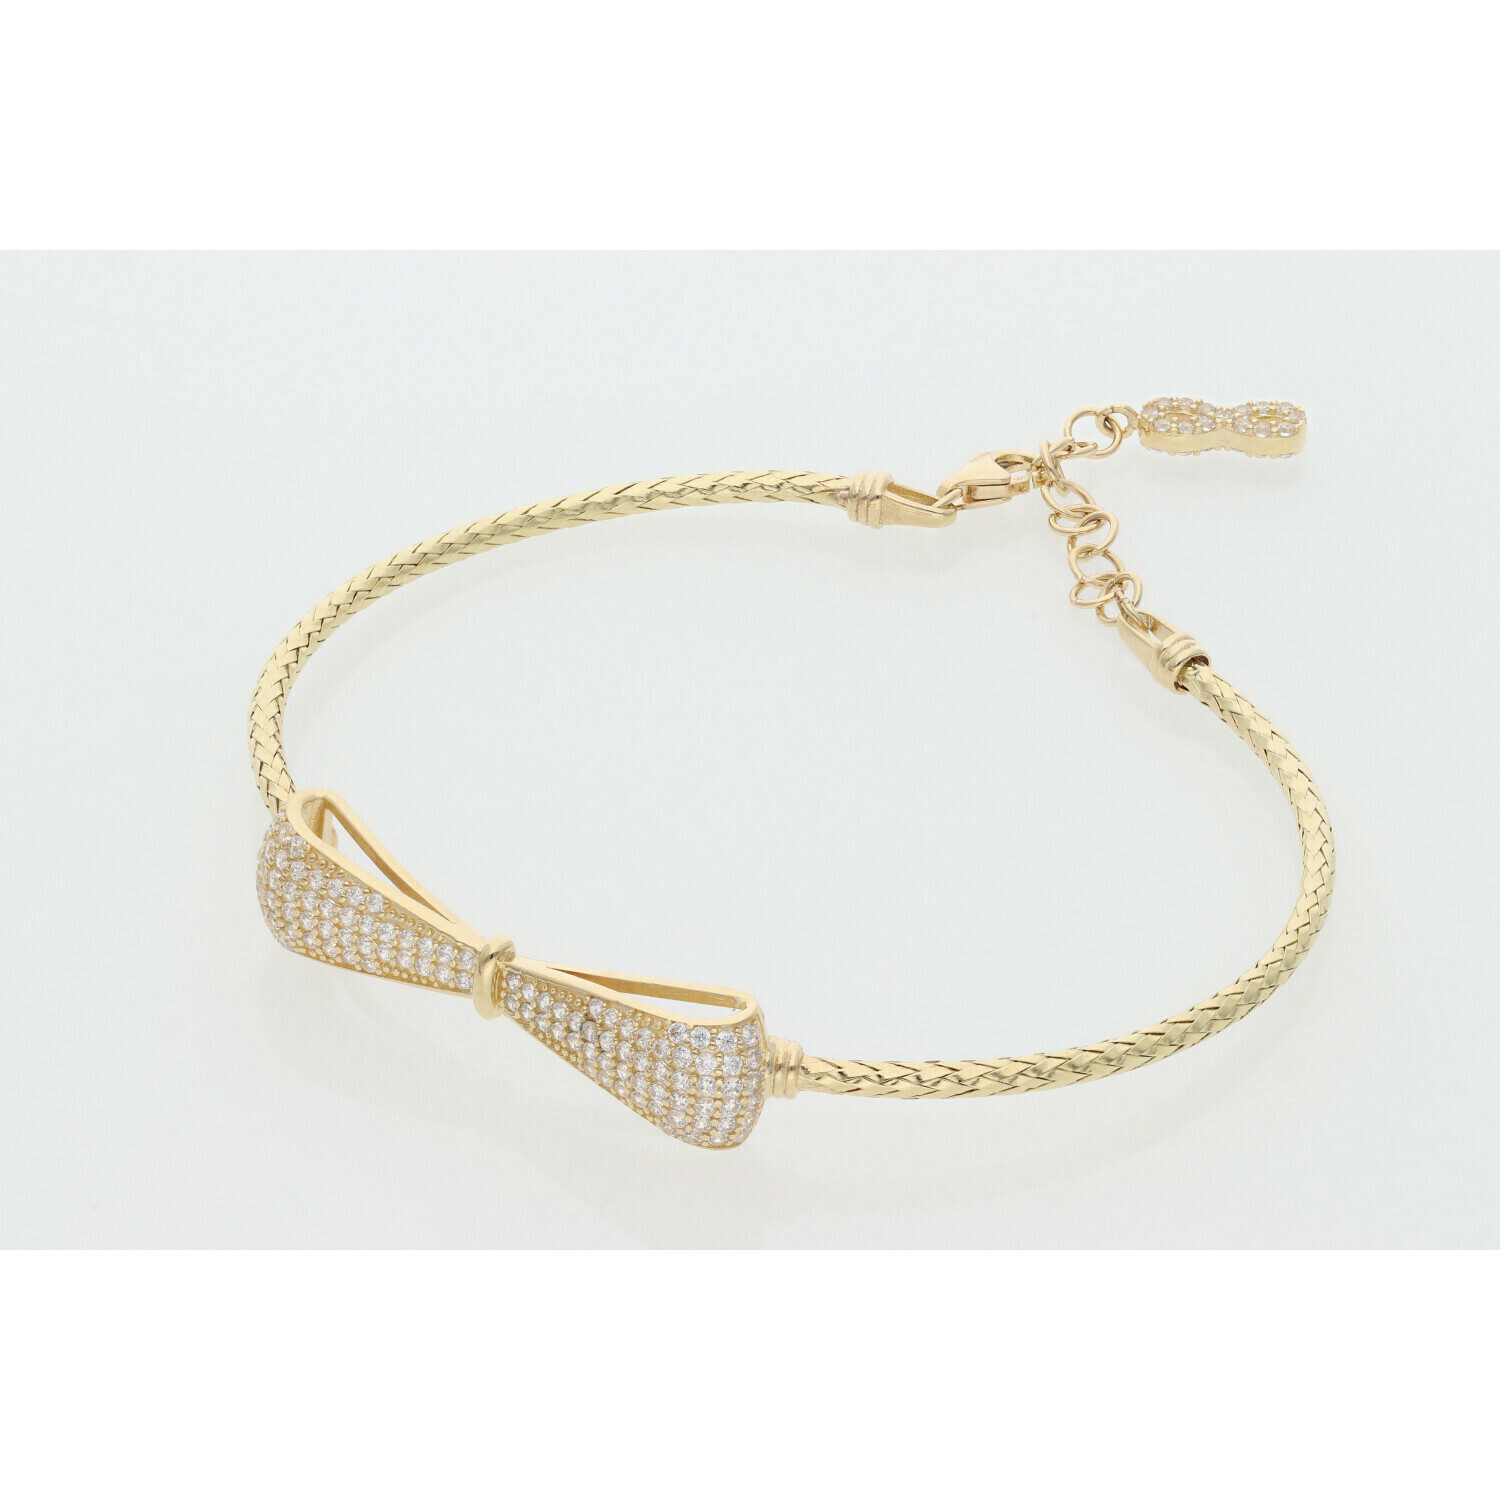 14 Karat Gold & Zirconium Ribbon Bangle